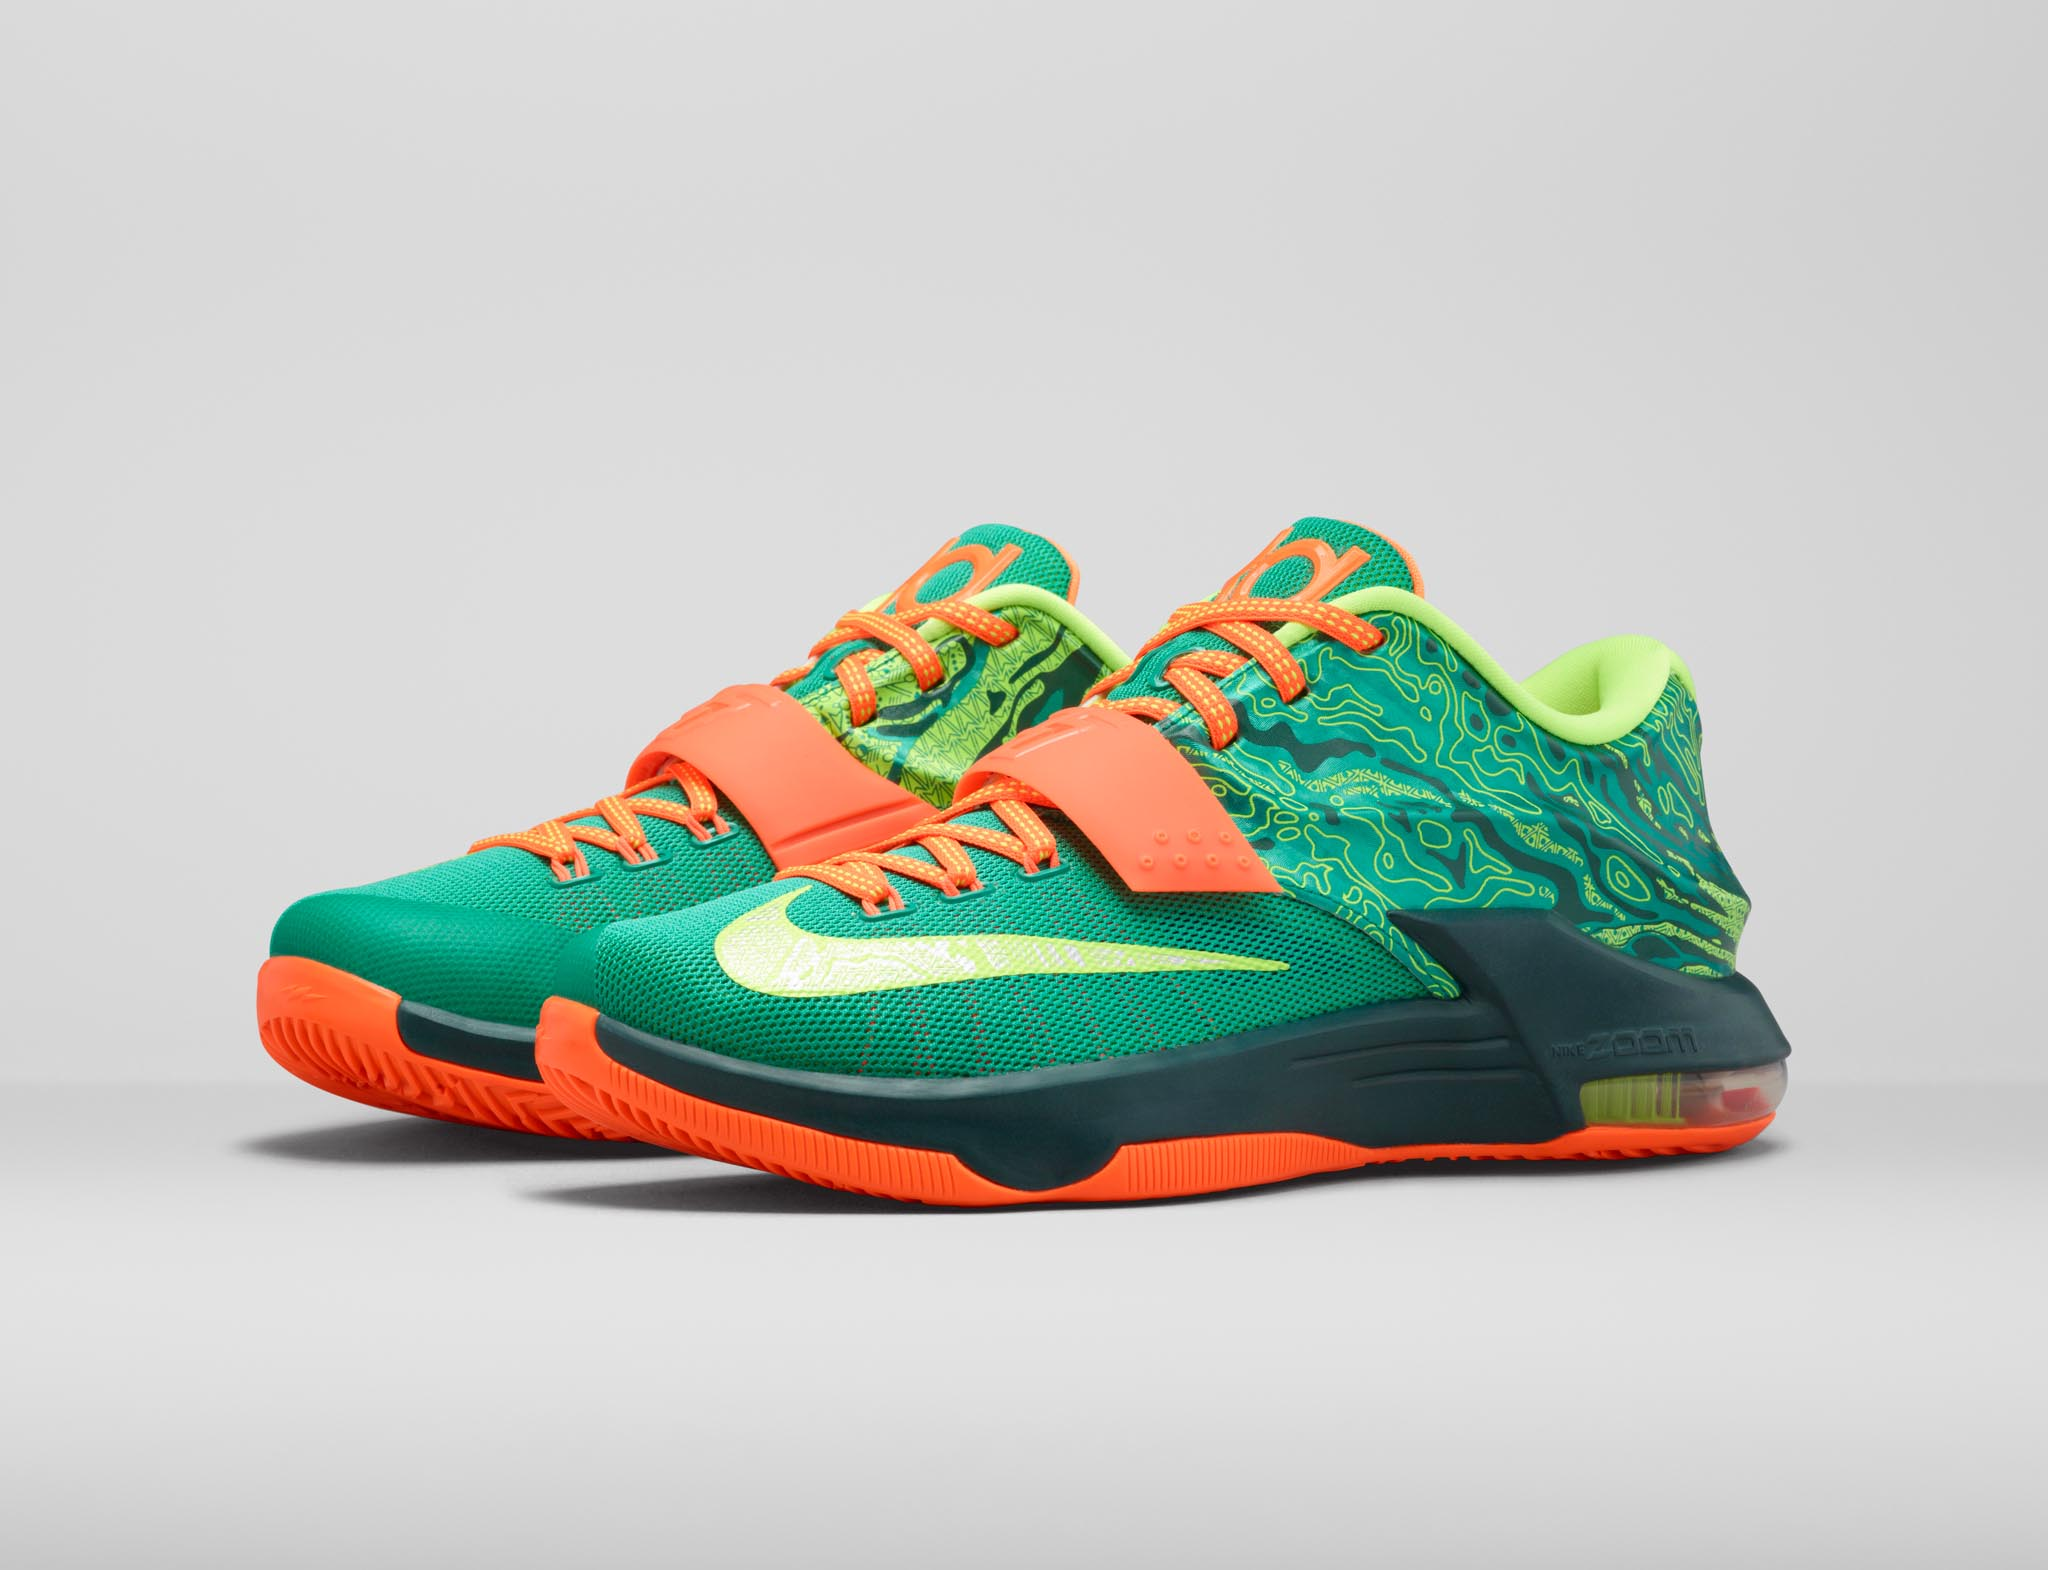 cb2cf19e3ff5a ... czech the nike kd7 weatherman is one of those shoes i that made me want  to